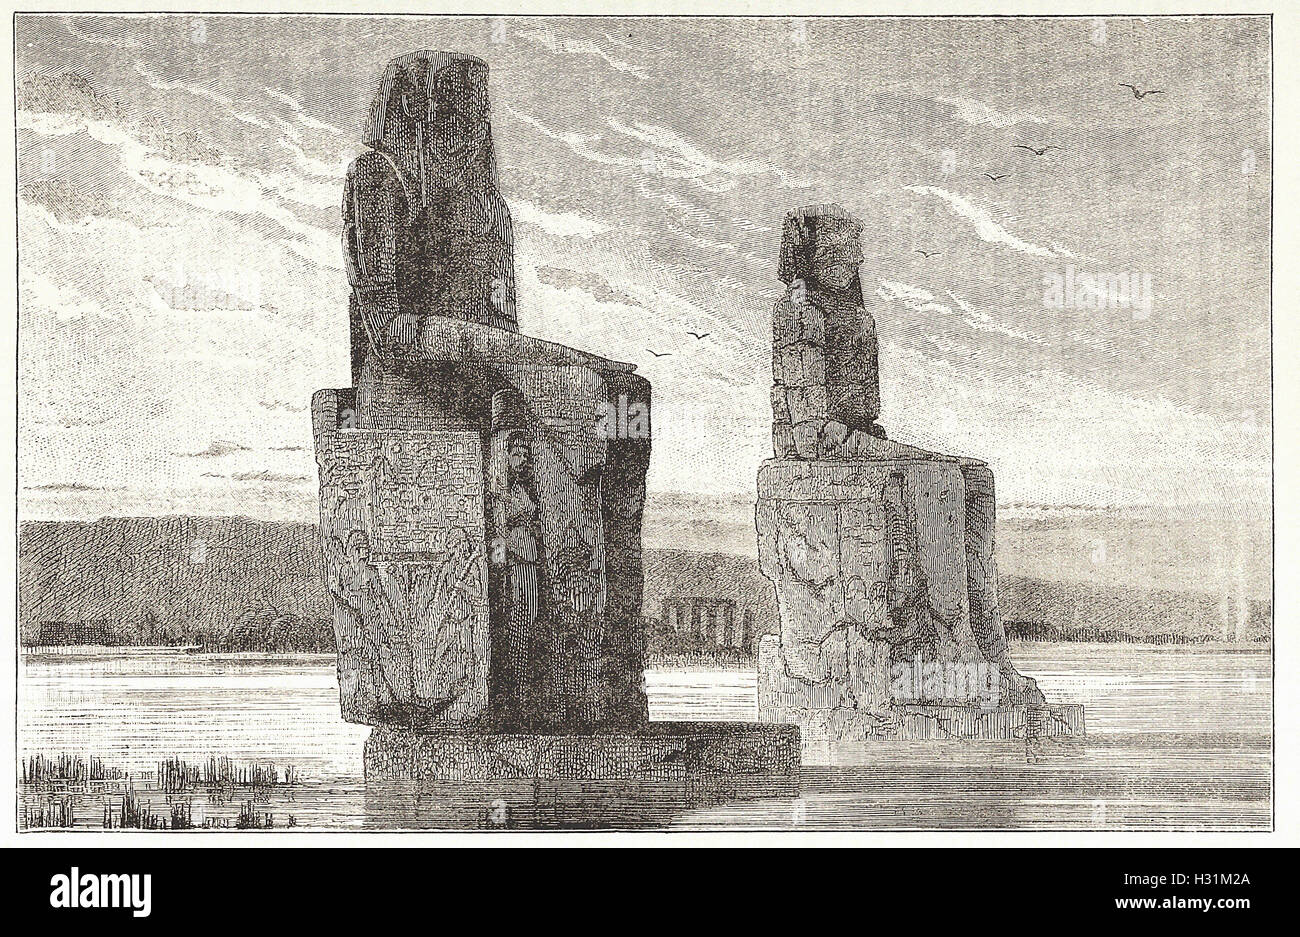 COLOSSAL STATUES AT THEBES - from 'Cassell's Illustrated Universal History' - 1882 - Stock Image